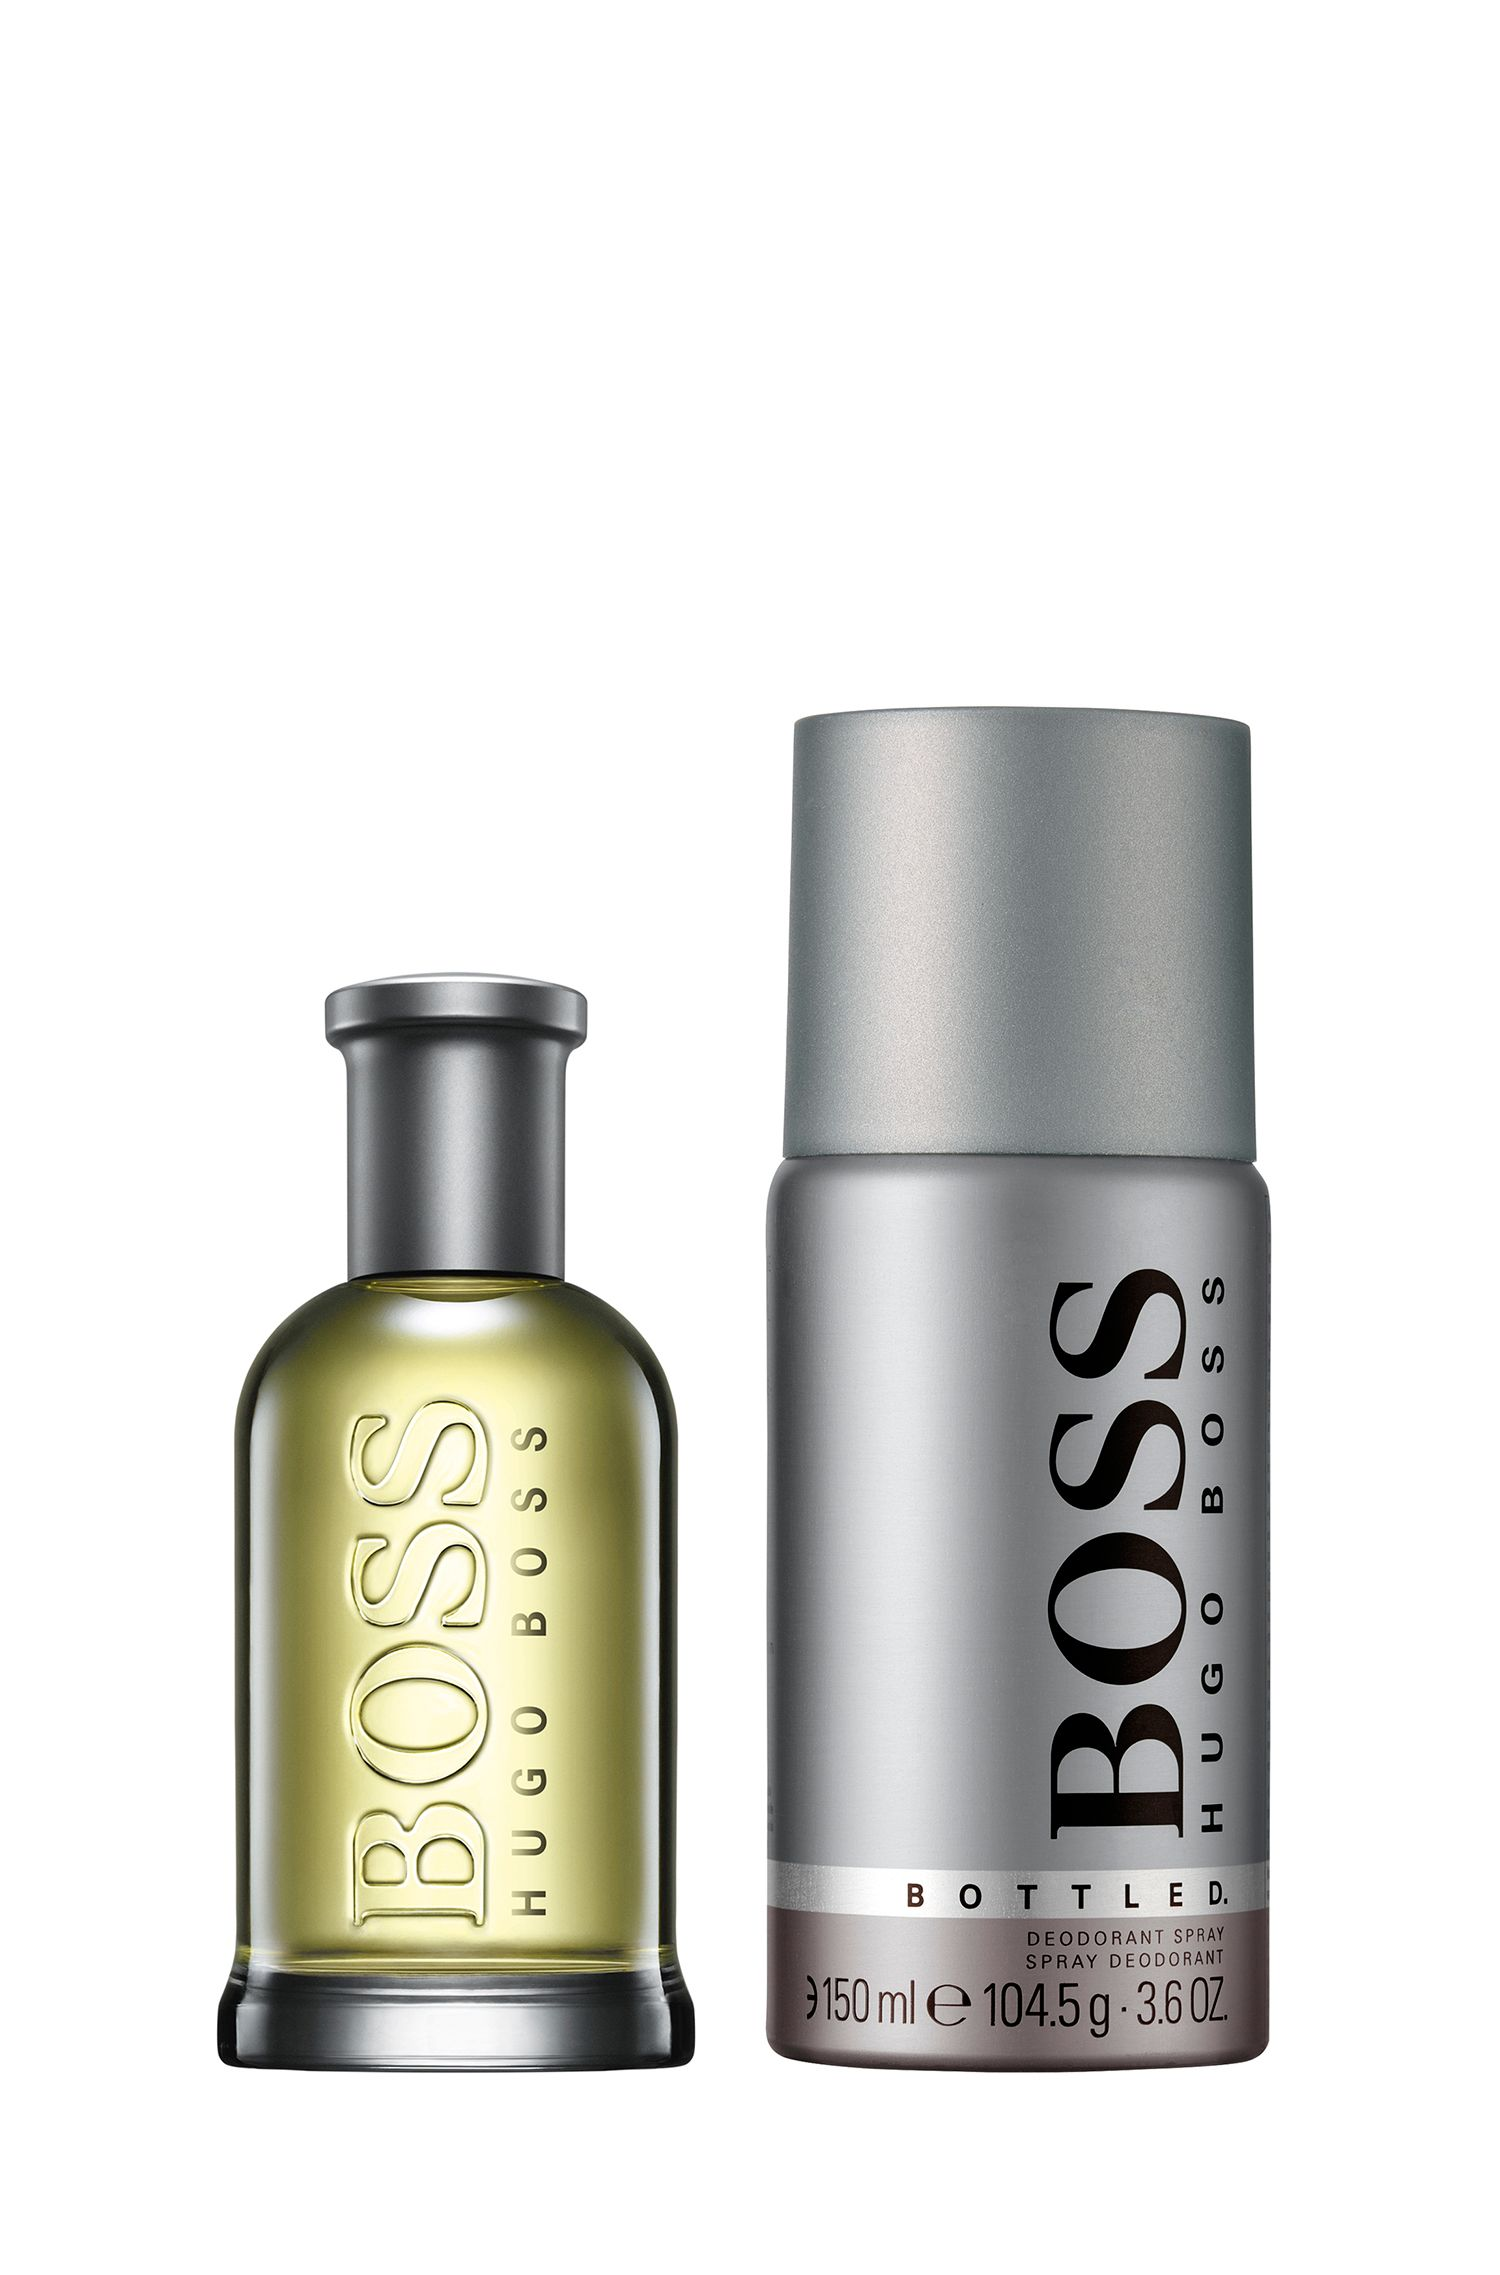 Cadeauset van BOSS Bottled met een eau de toilette en deodorant, Assorted-Pre-Pack